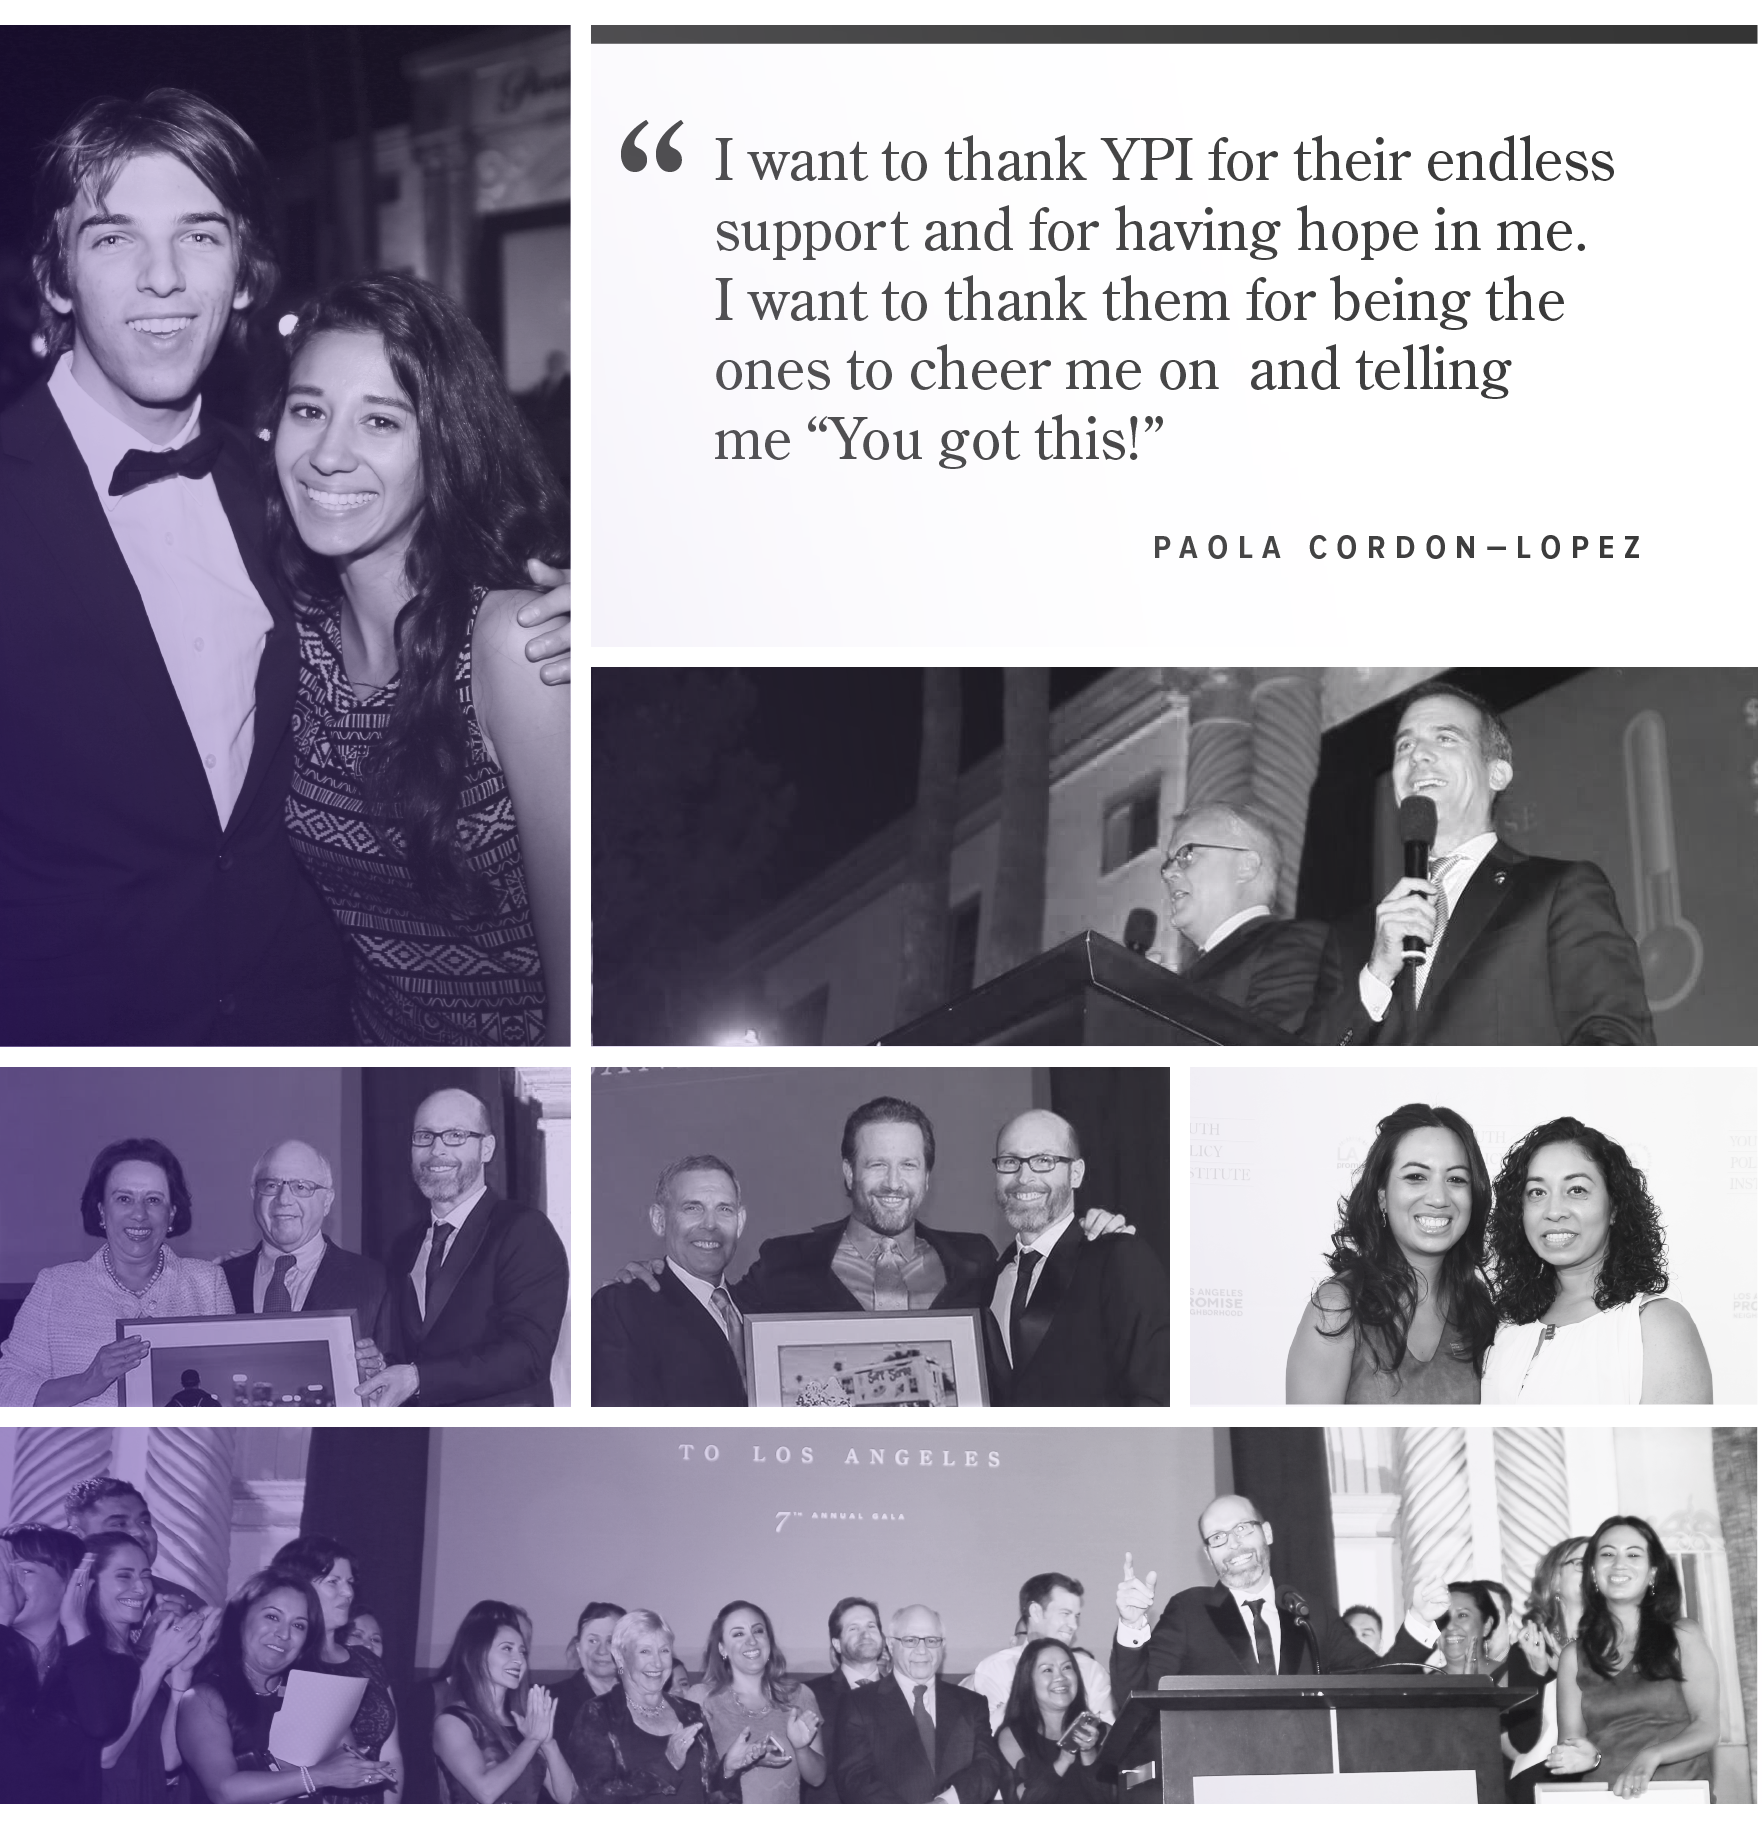 Gala_collage_Paola_Cordon_quote.png